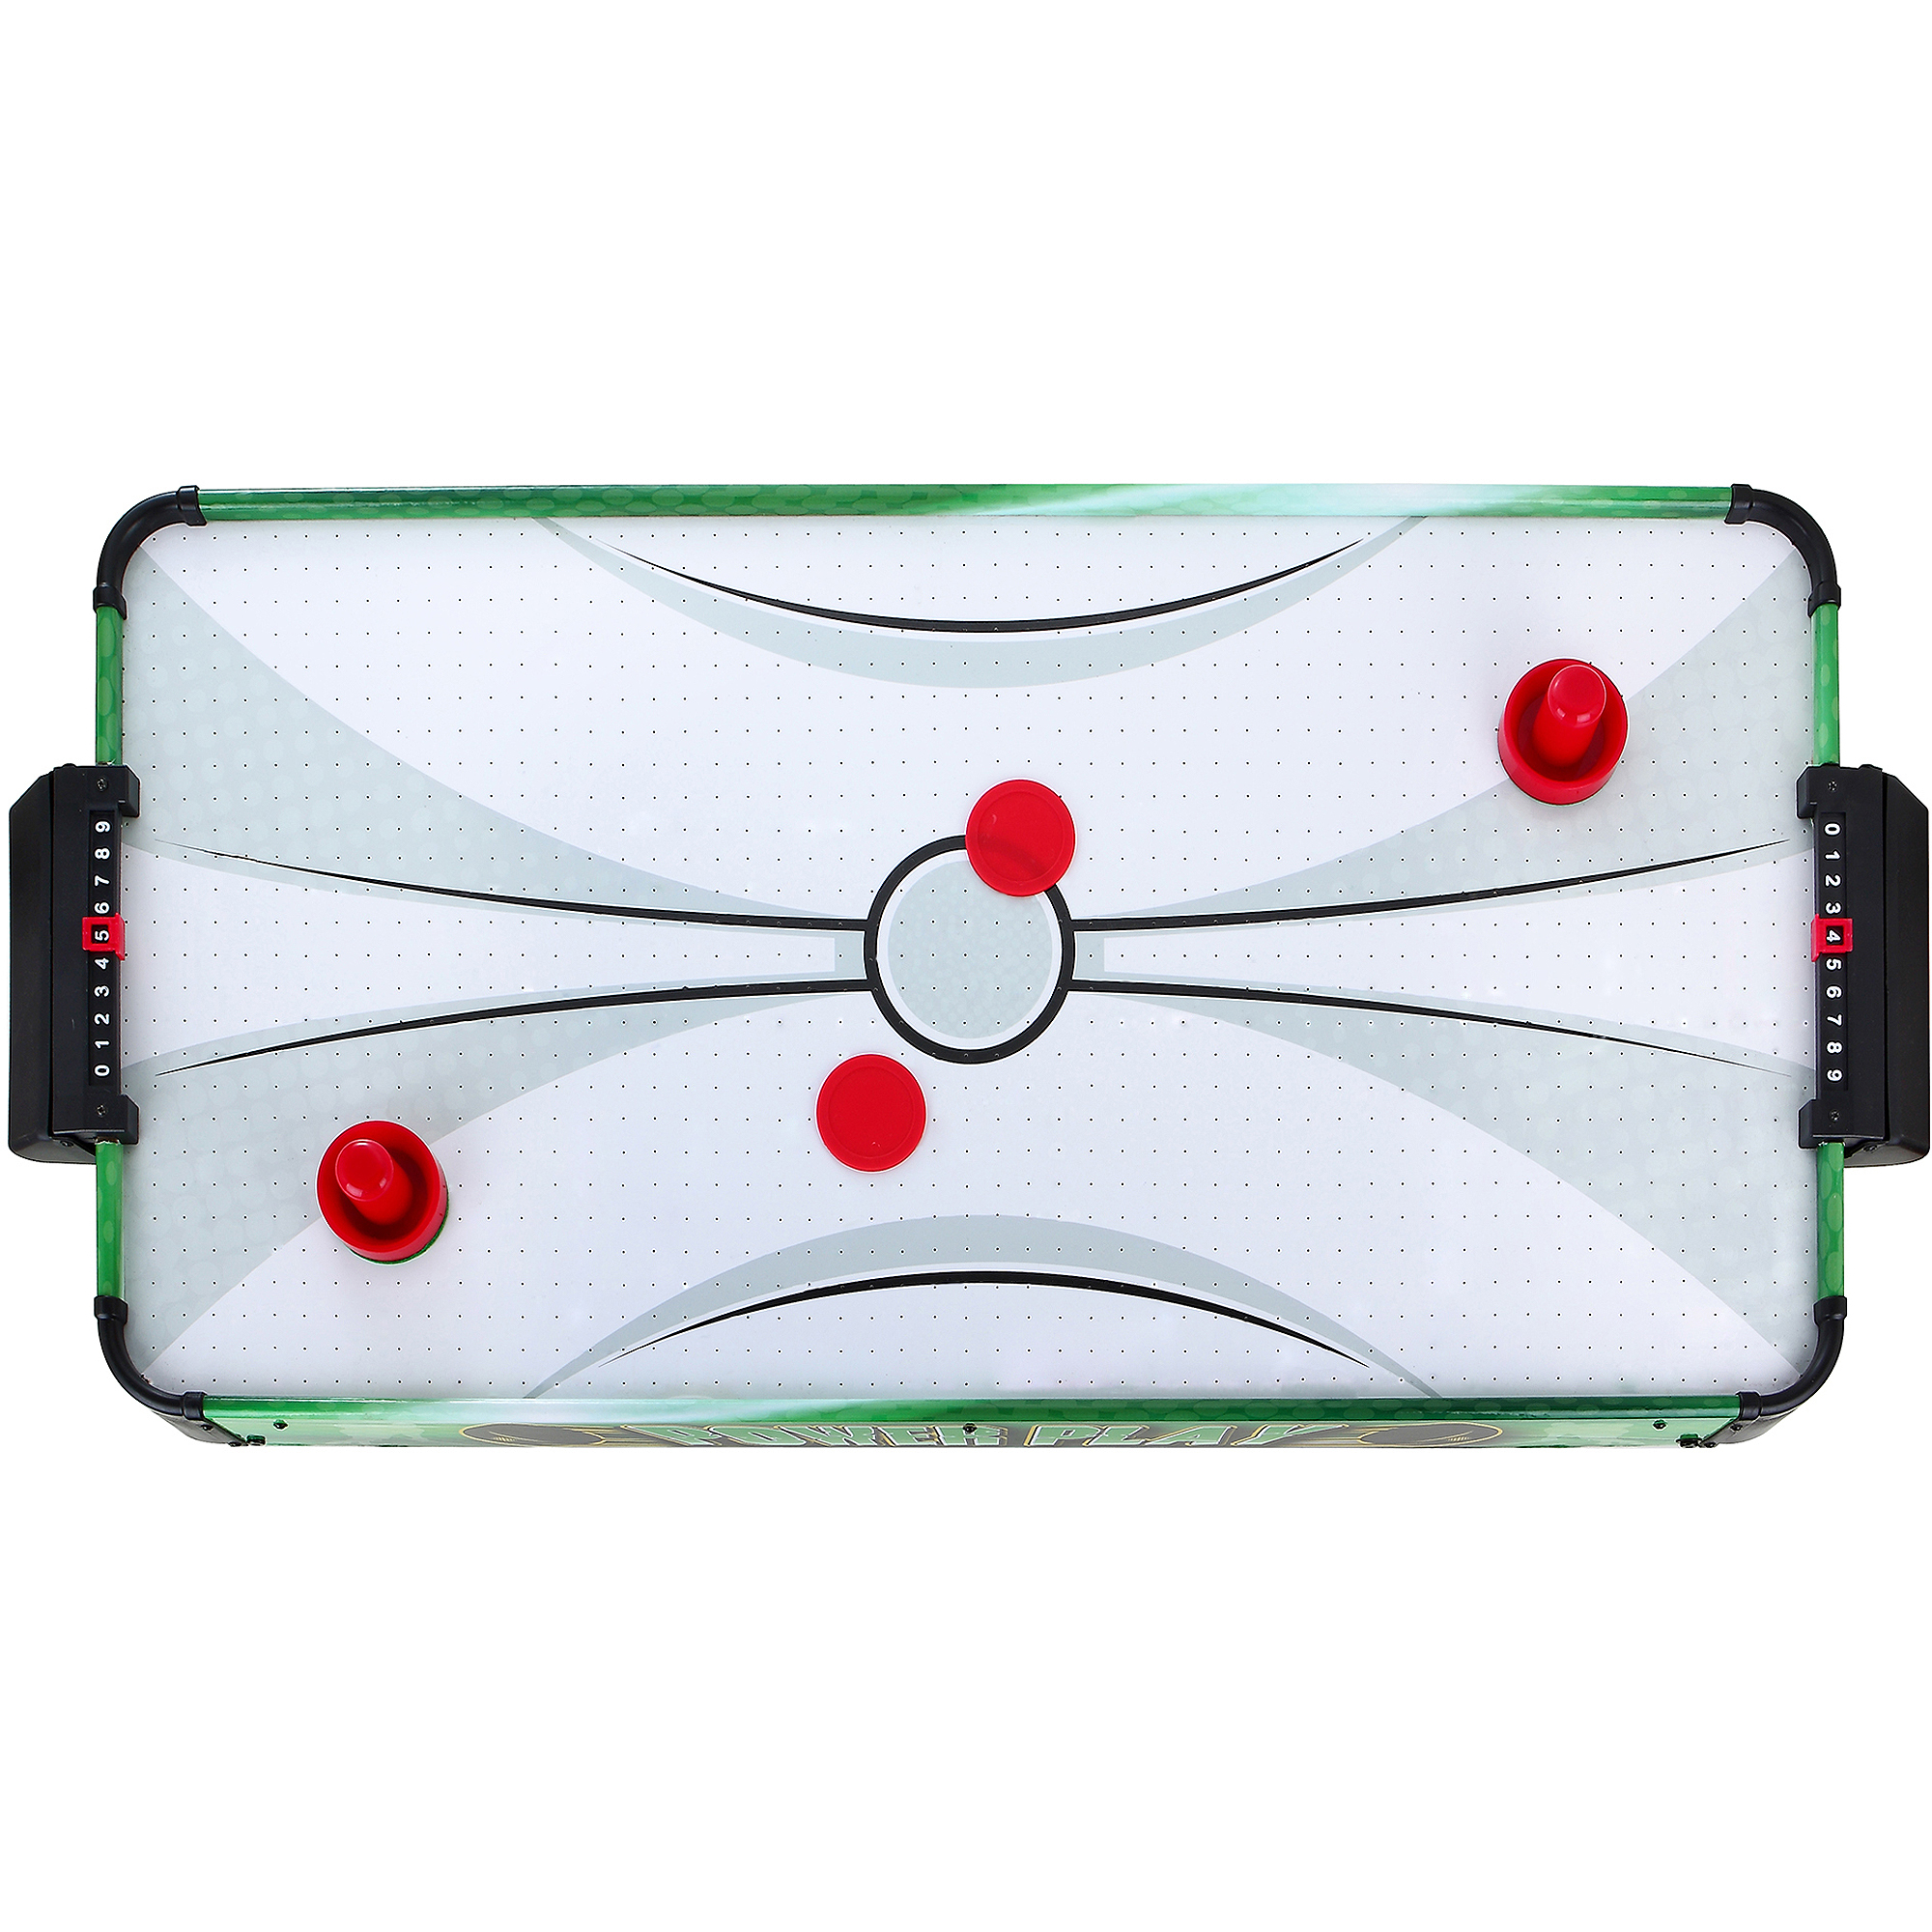 "Hathaway Power Play 40"" Table Top Air Hockey"